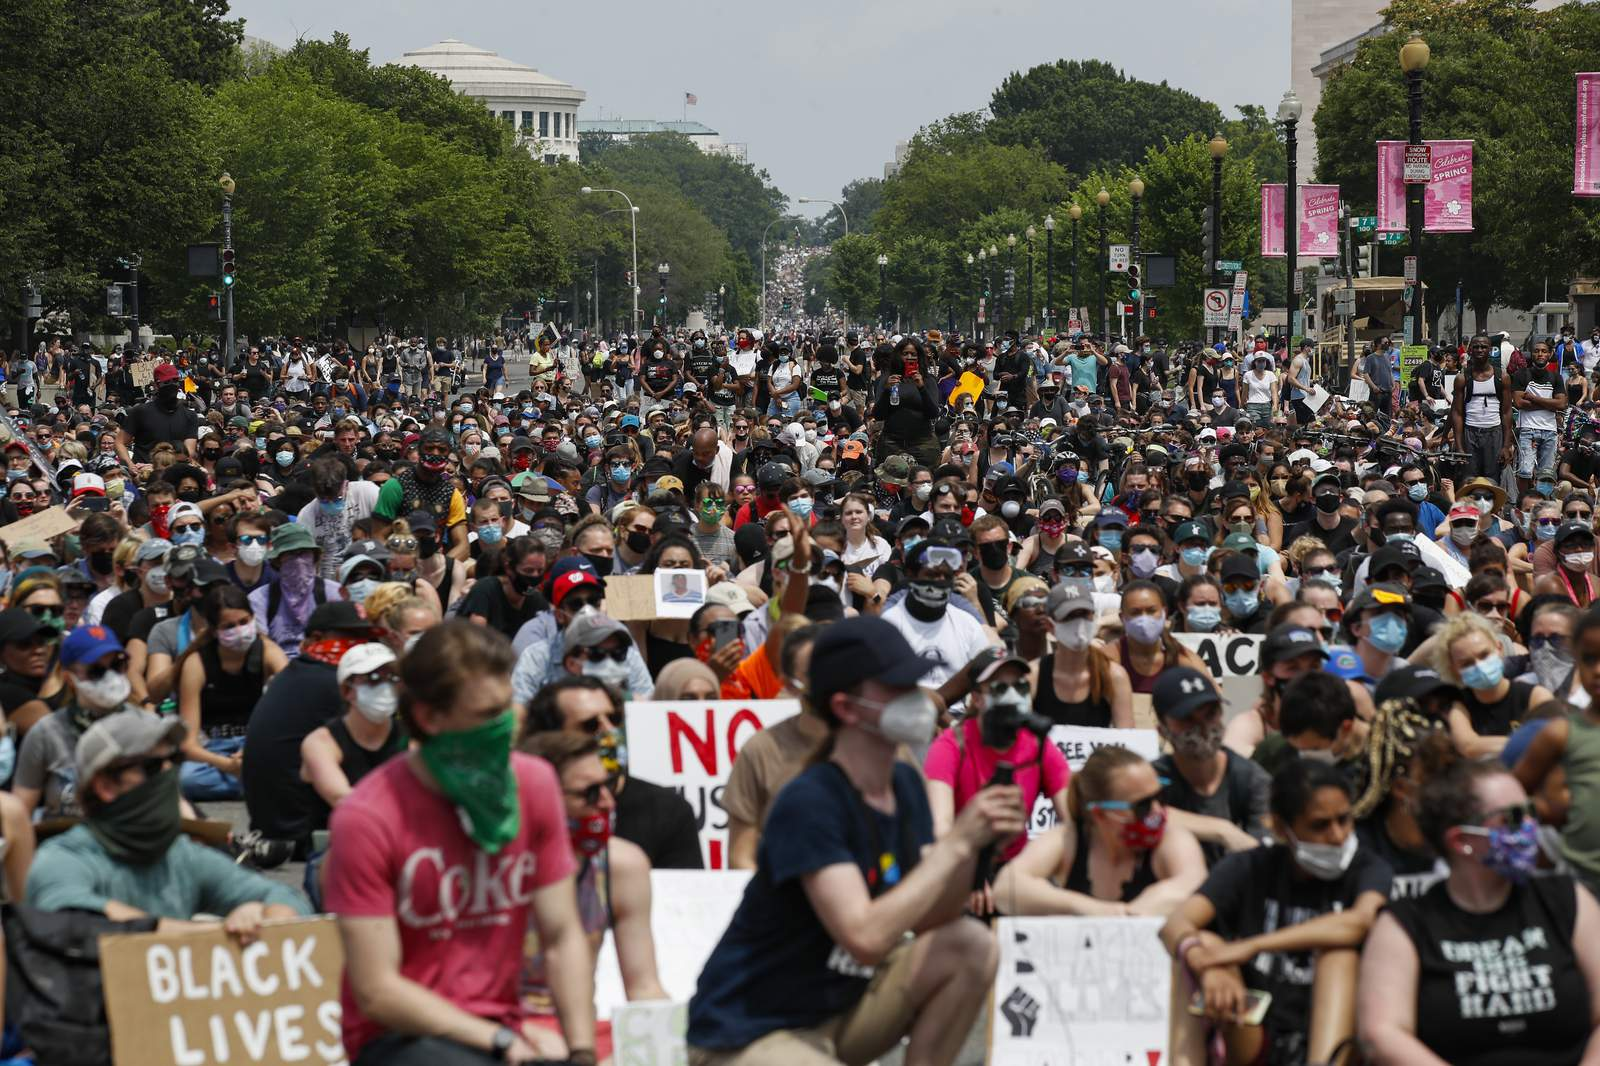 Demonstrators protest Saturday, June 6, 2020, in Washington, over the death of George Floyd, a black man who was in police custody in Minneapolis. Floyd died after being restrained by Minneapolis police officers. (Images AP/Alex Brandon)